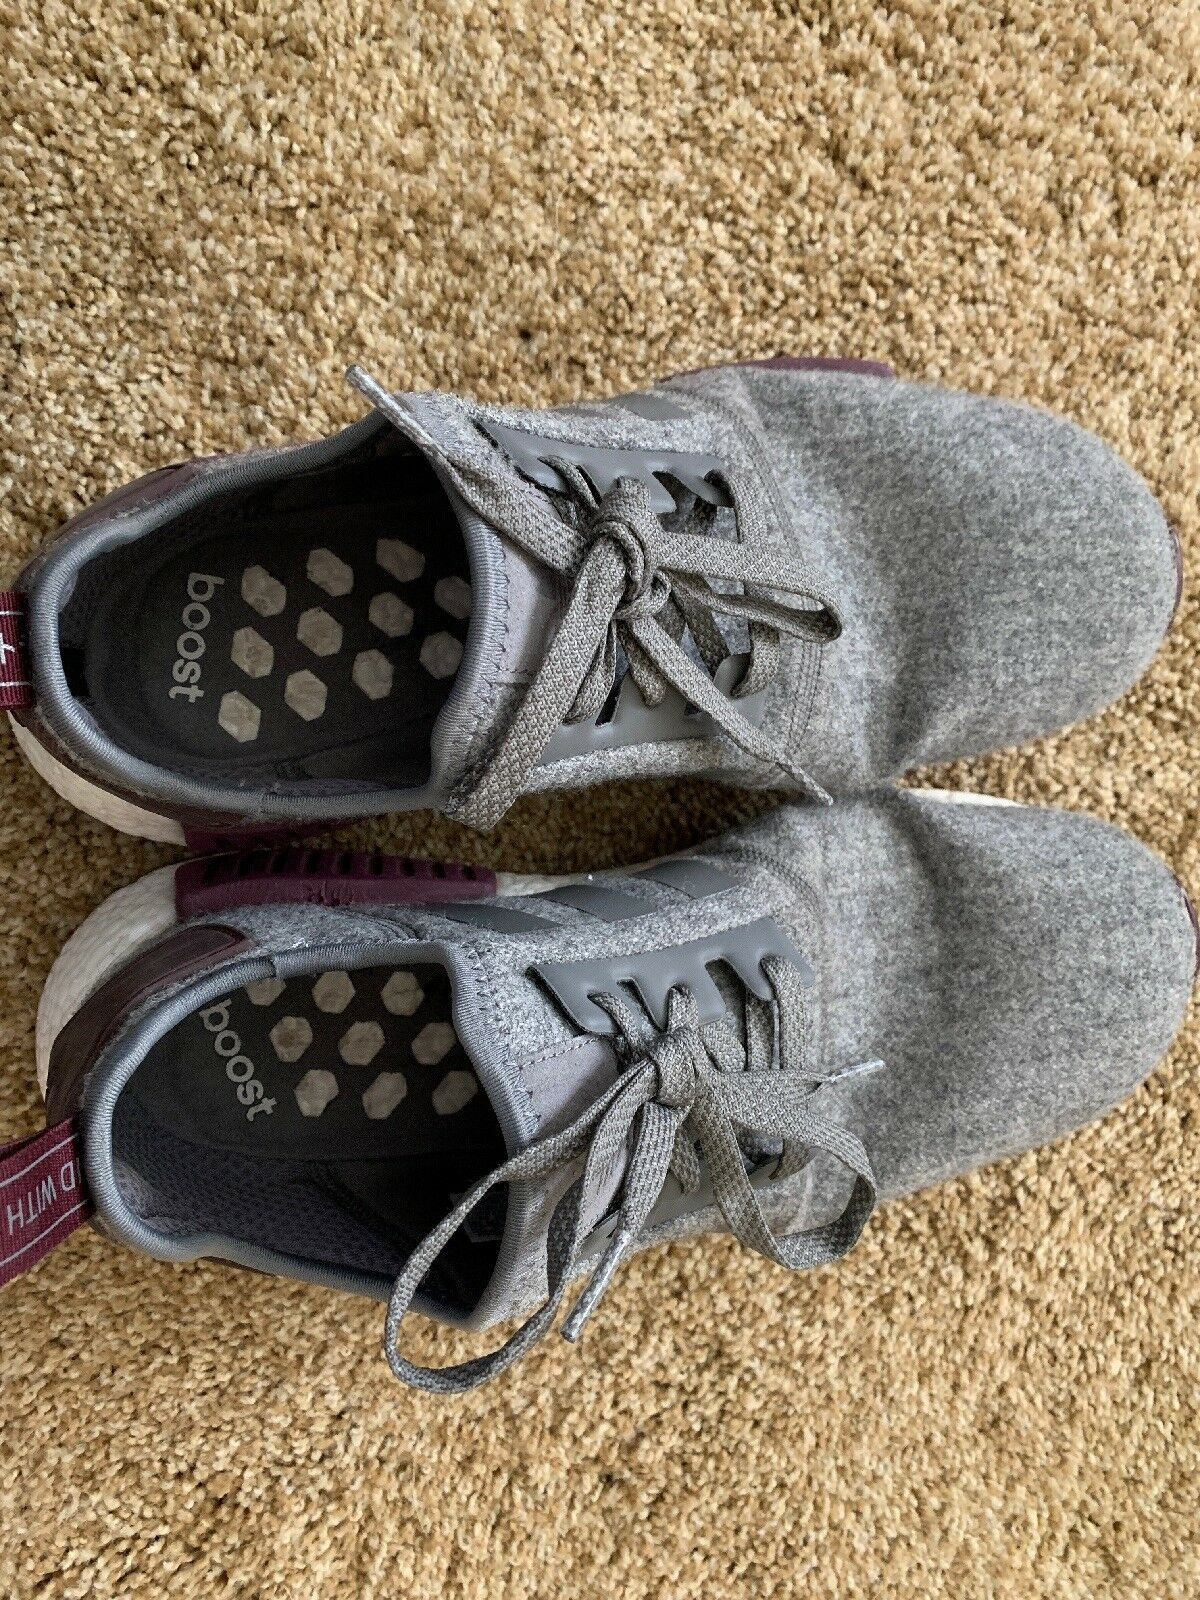 Adidas NMD_R1 Boost Wool Grey Maroon White CQ0761 Champs Exclusive -Size 11